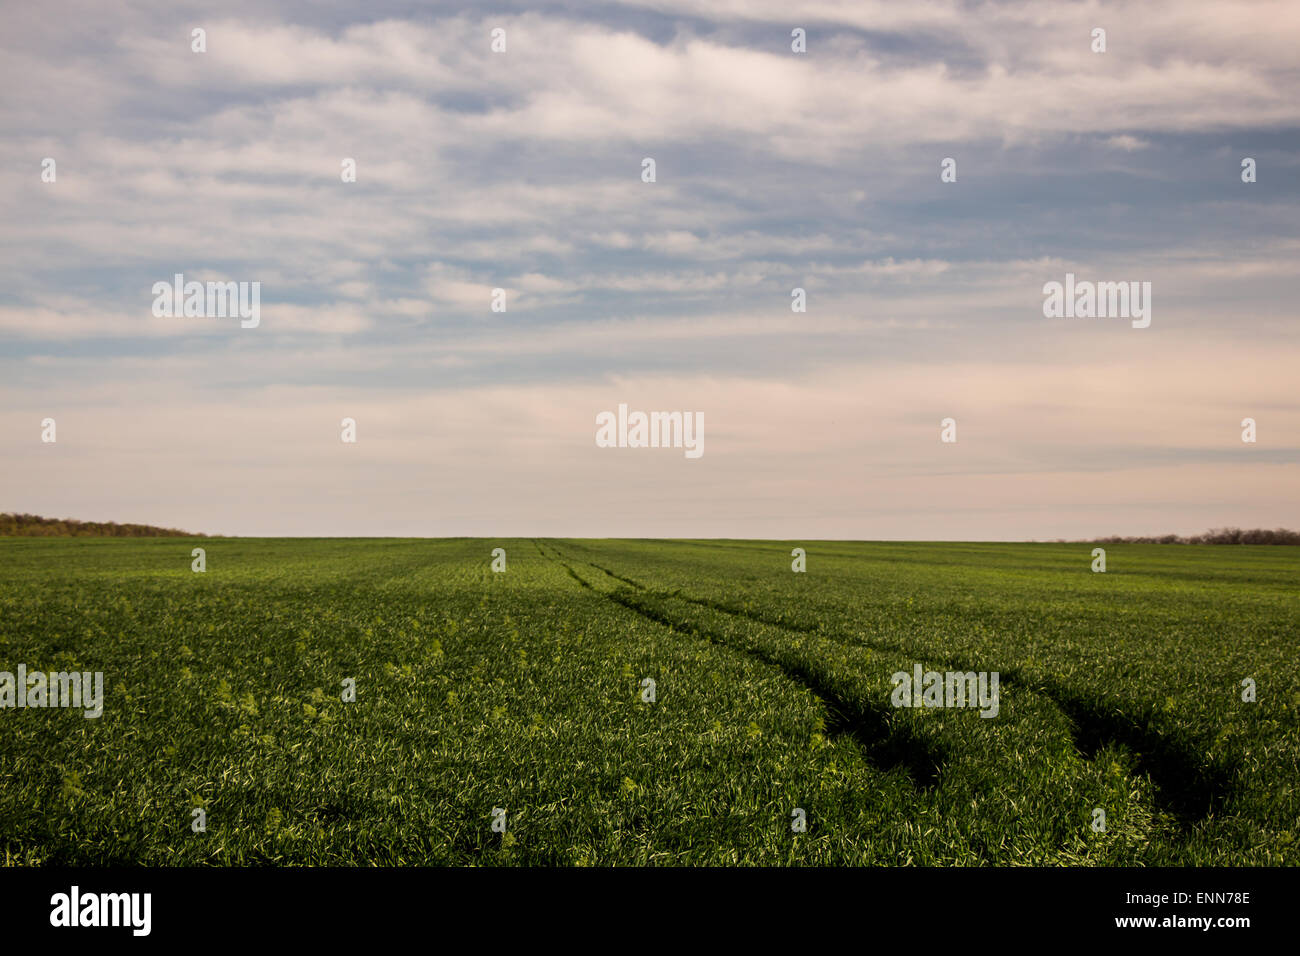 Green agronomy field with cars path - Stock Image